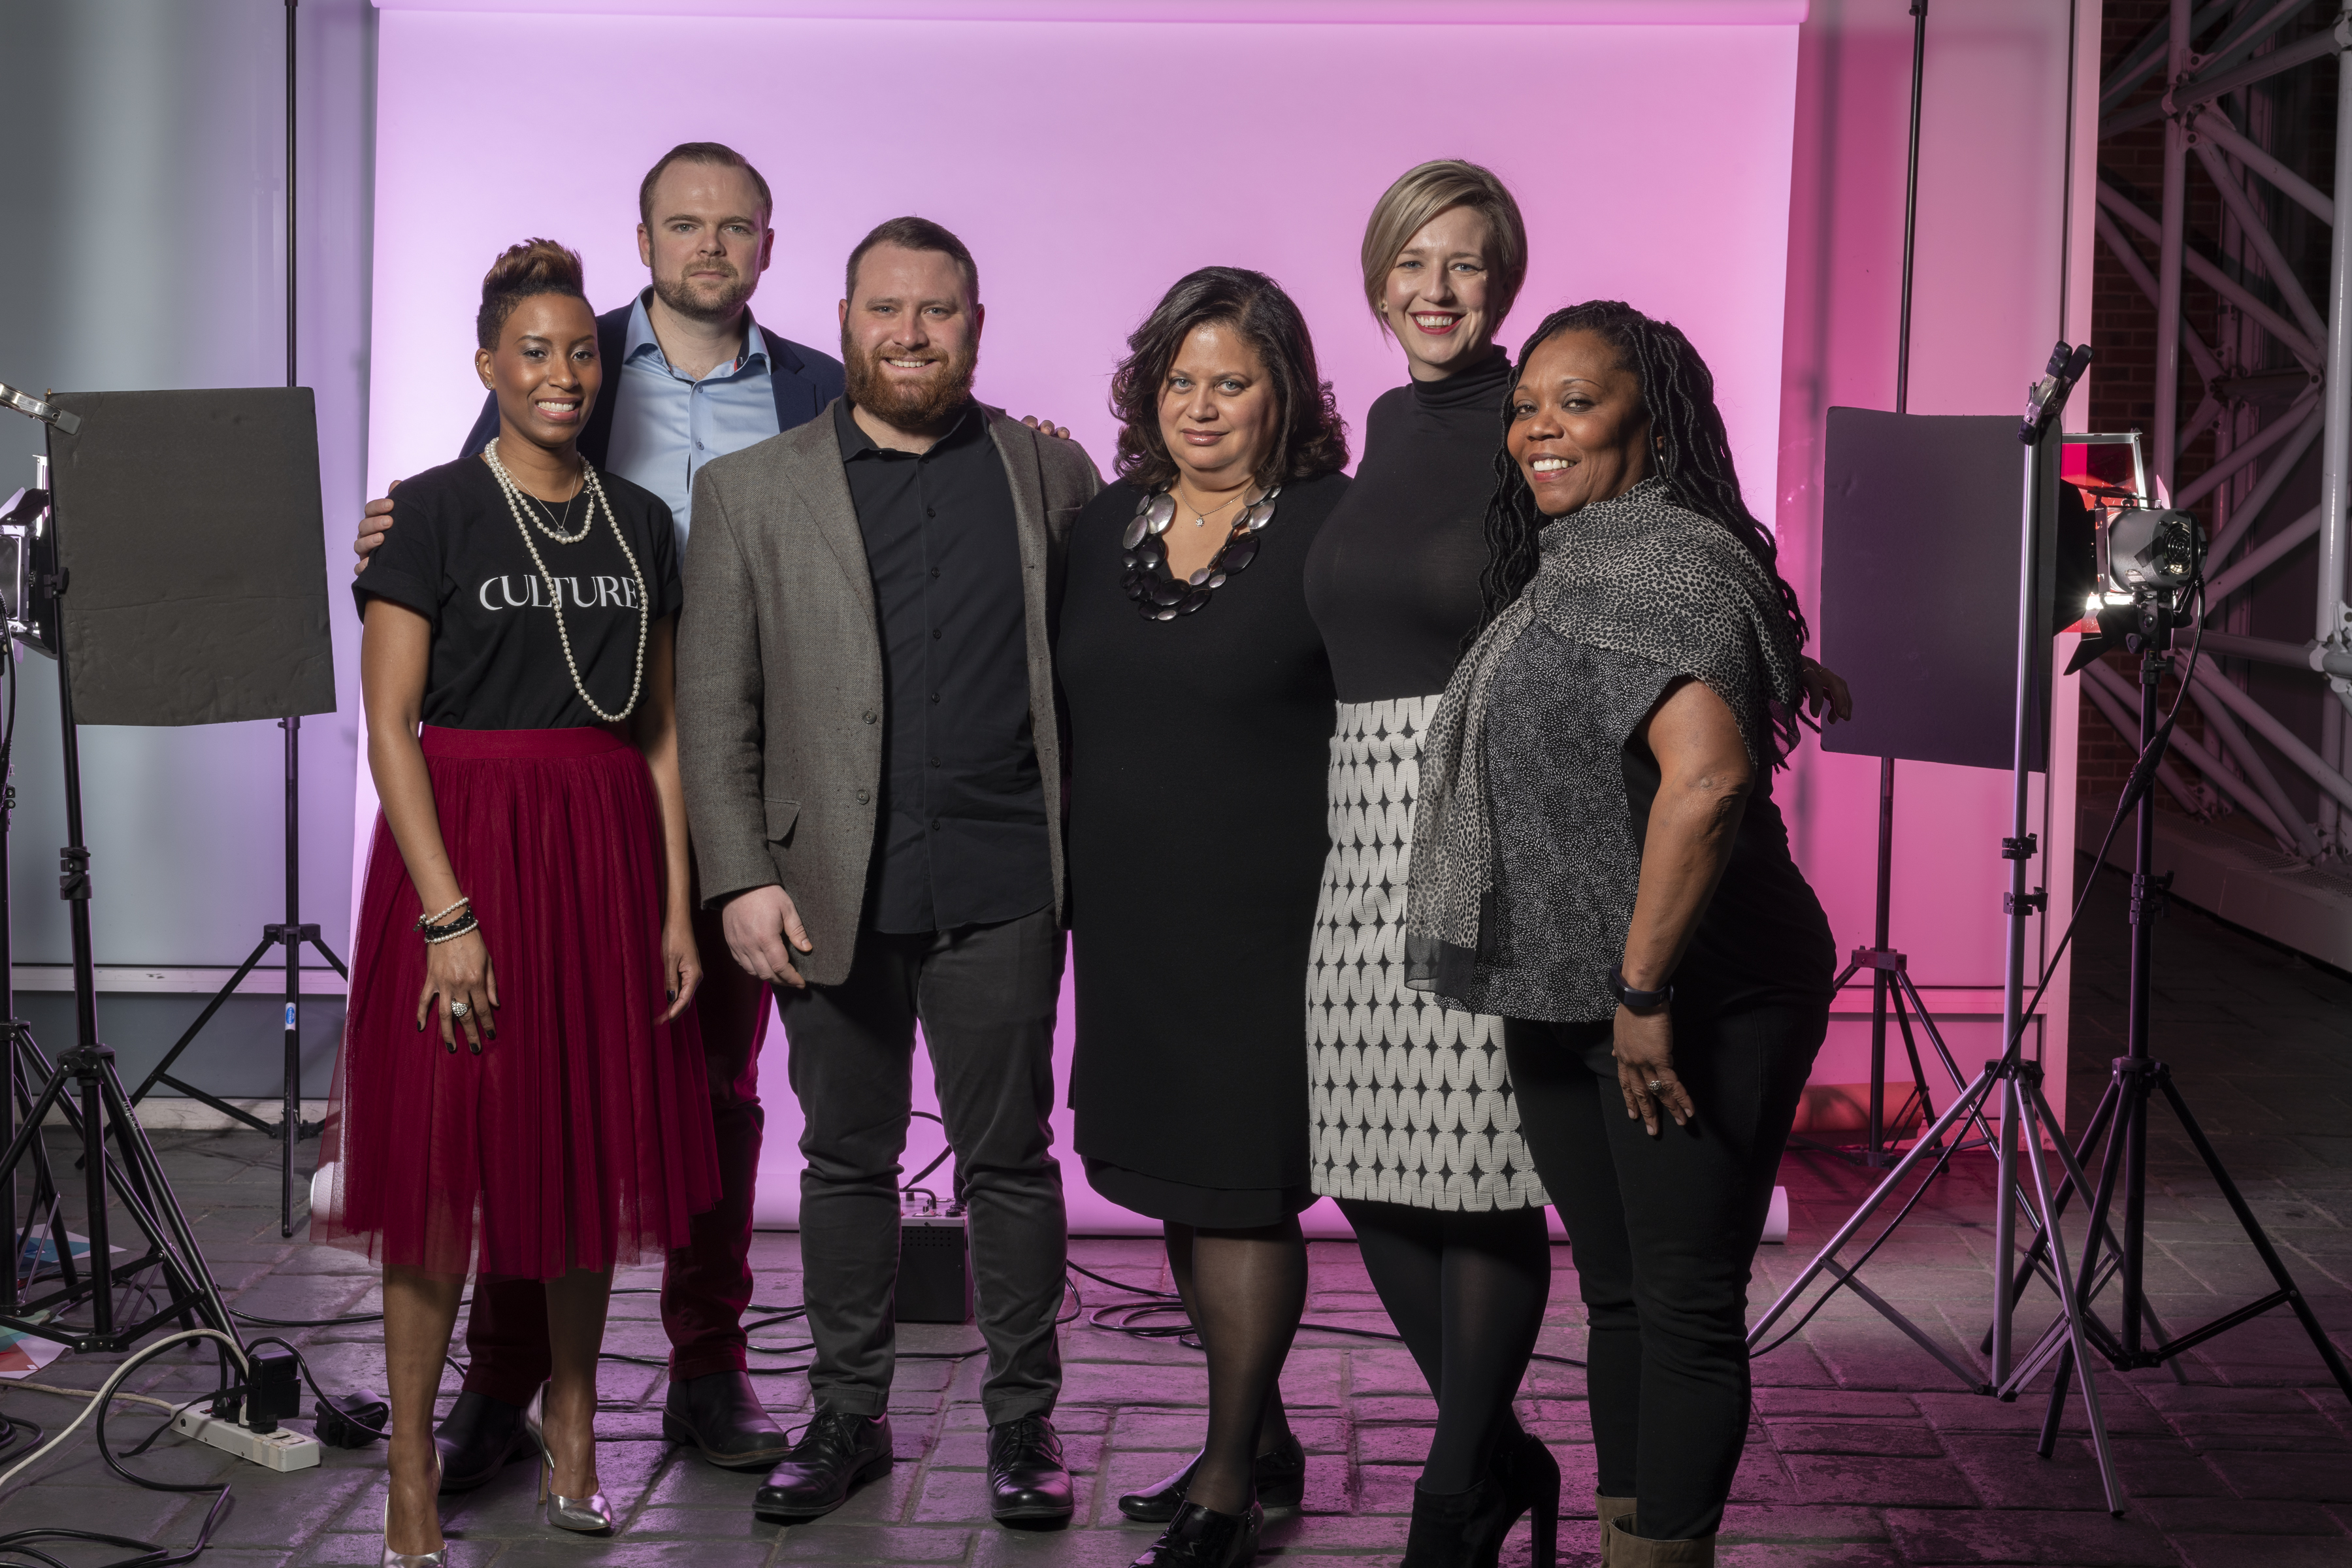 Navy Pier's Art, Culture and Engagement Team standing together at a photo studio